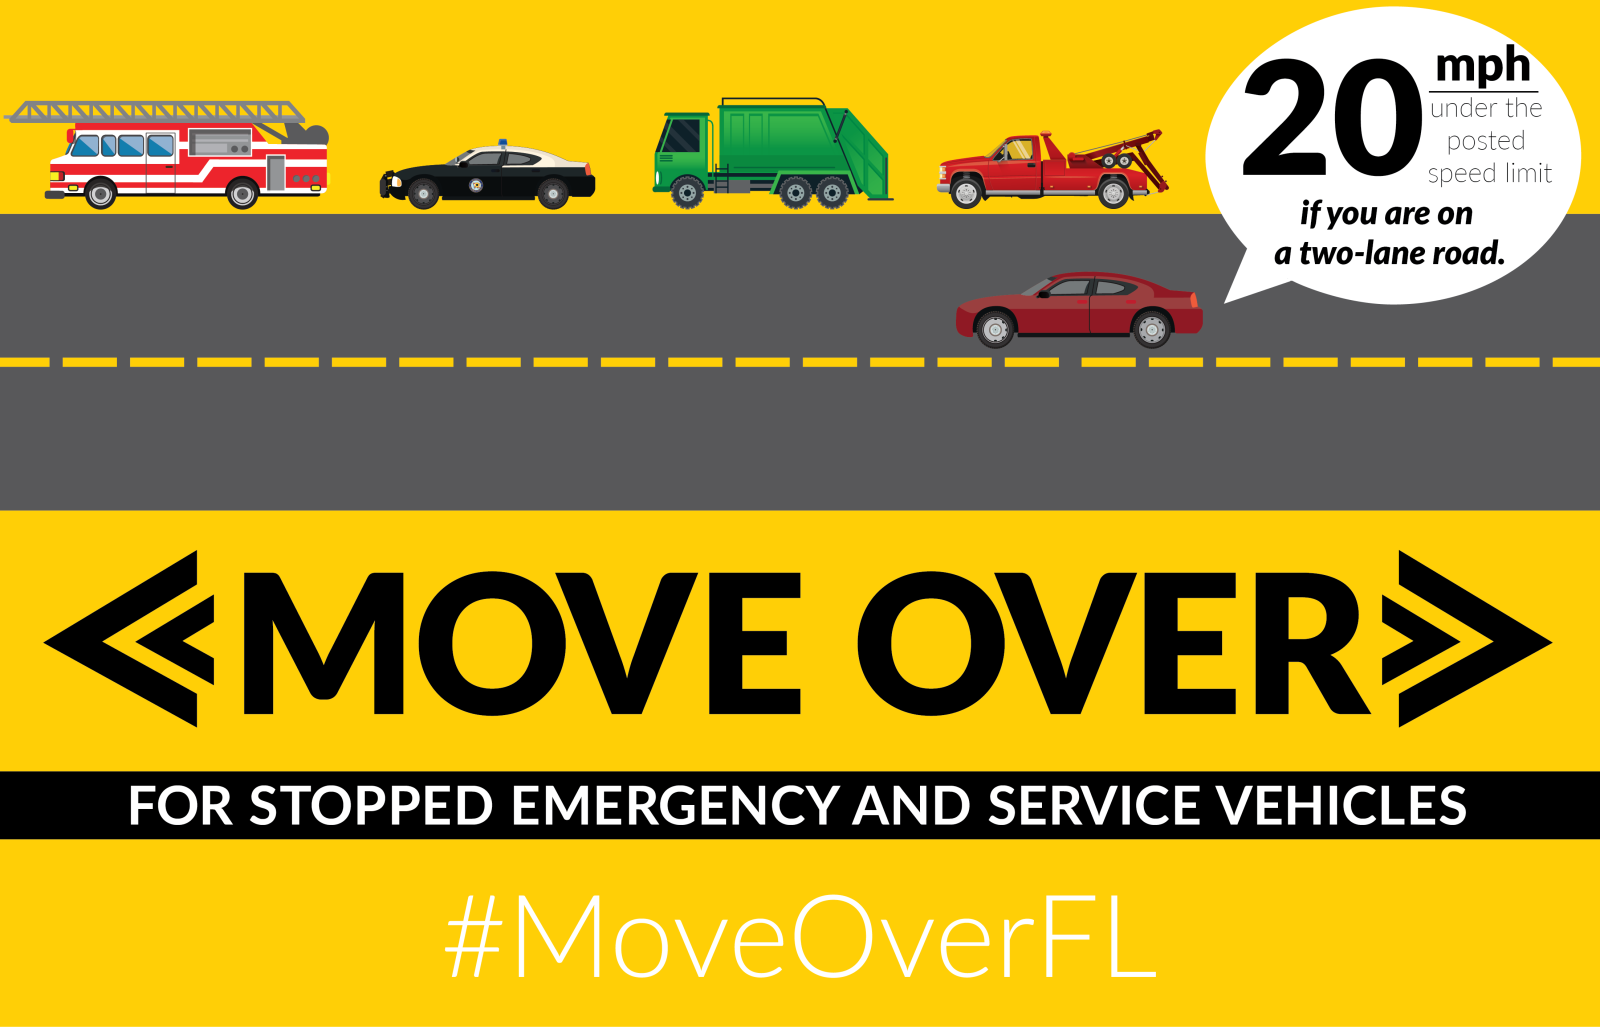 Move Over - Emergency & Service Vehicles